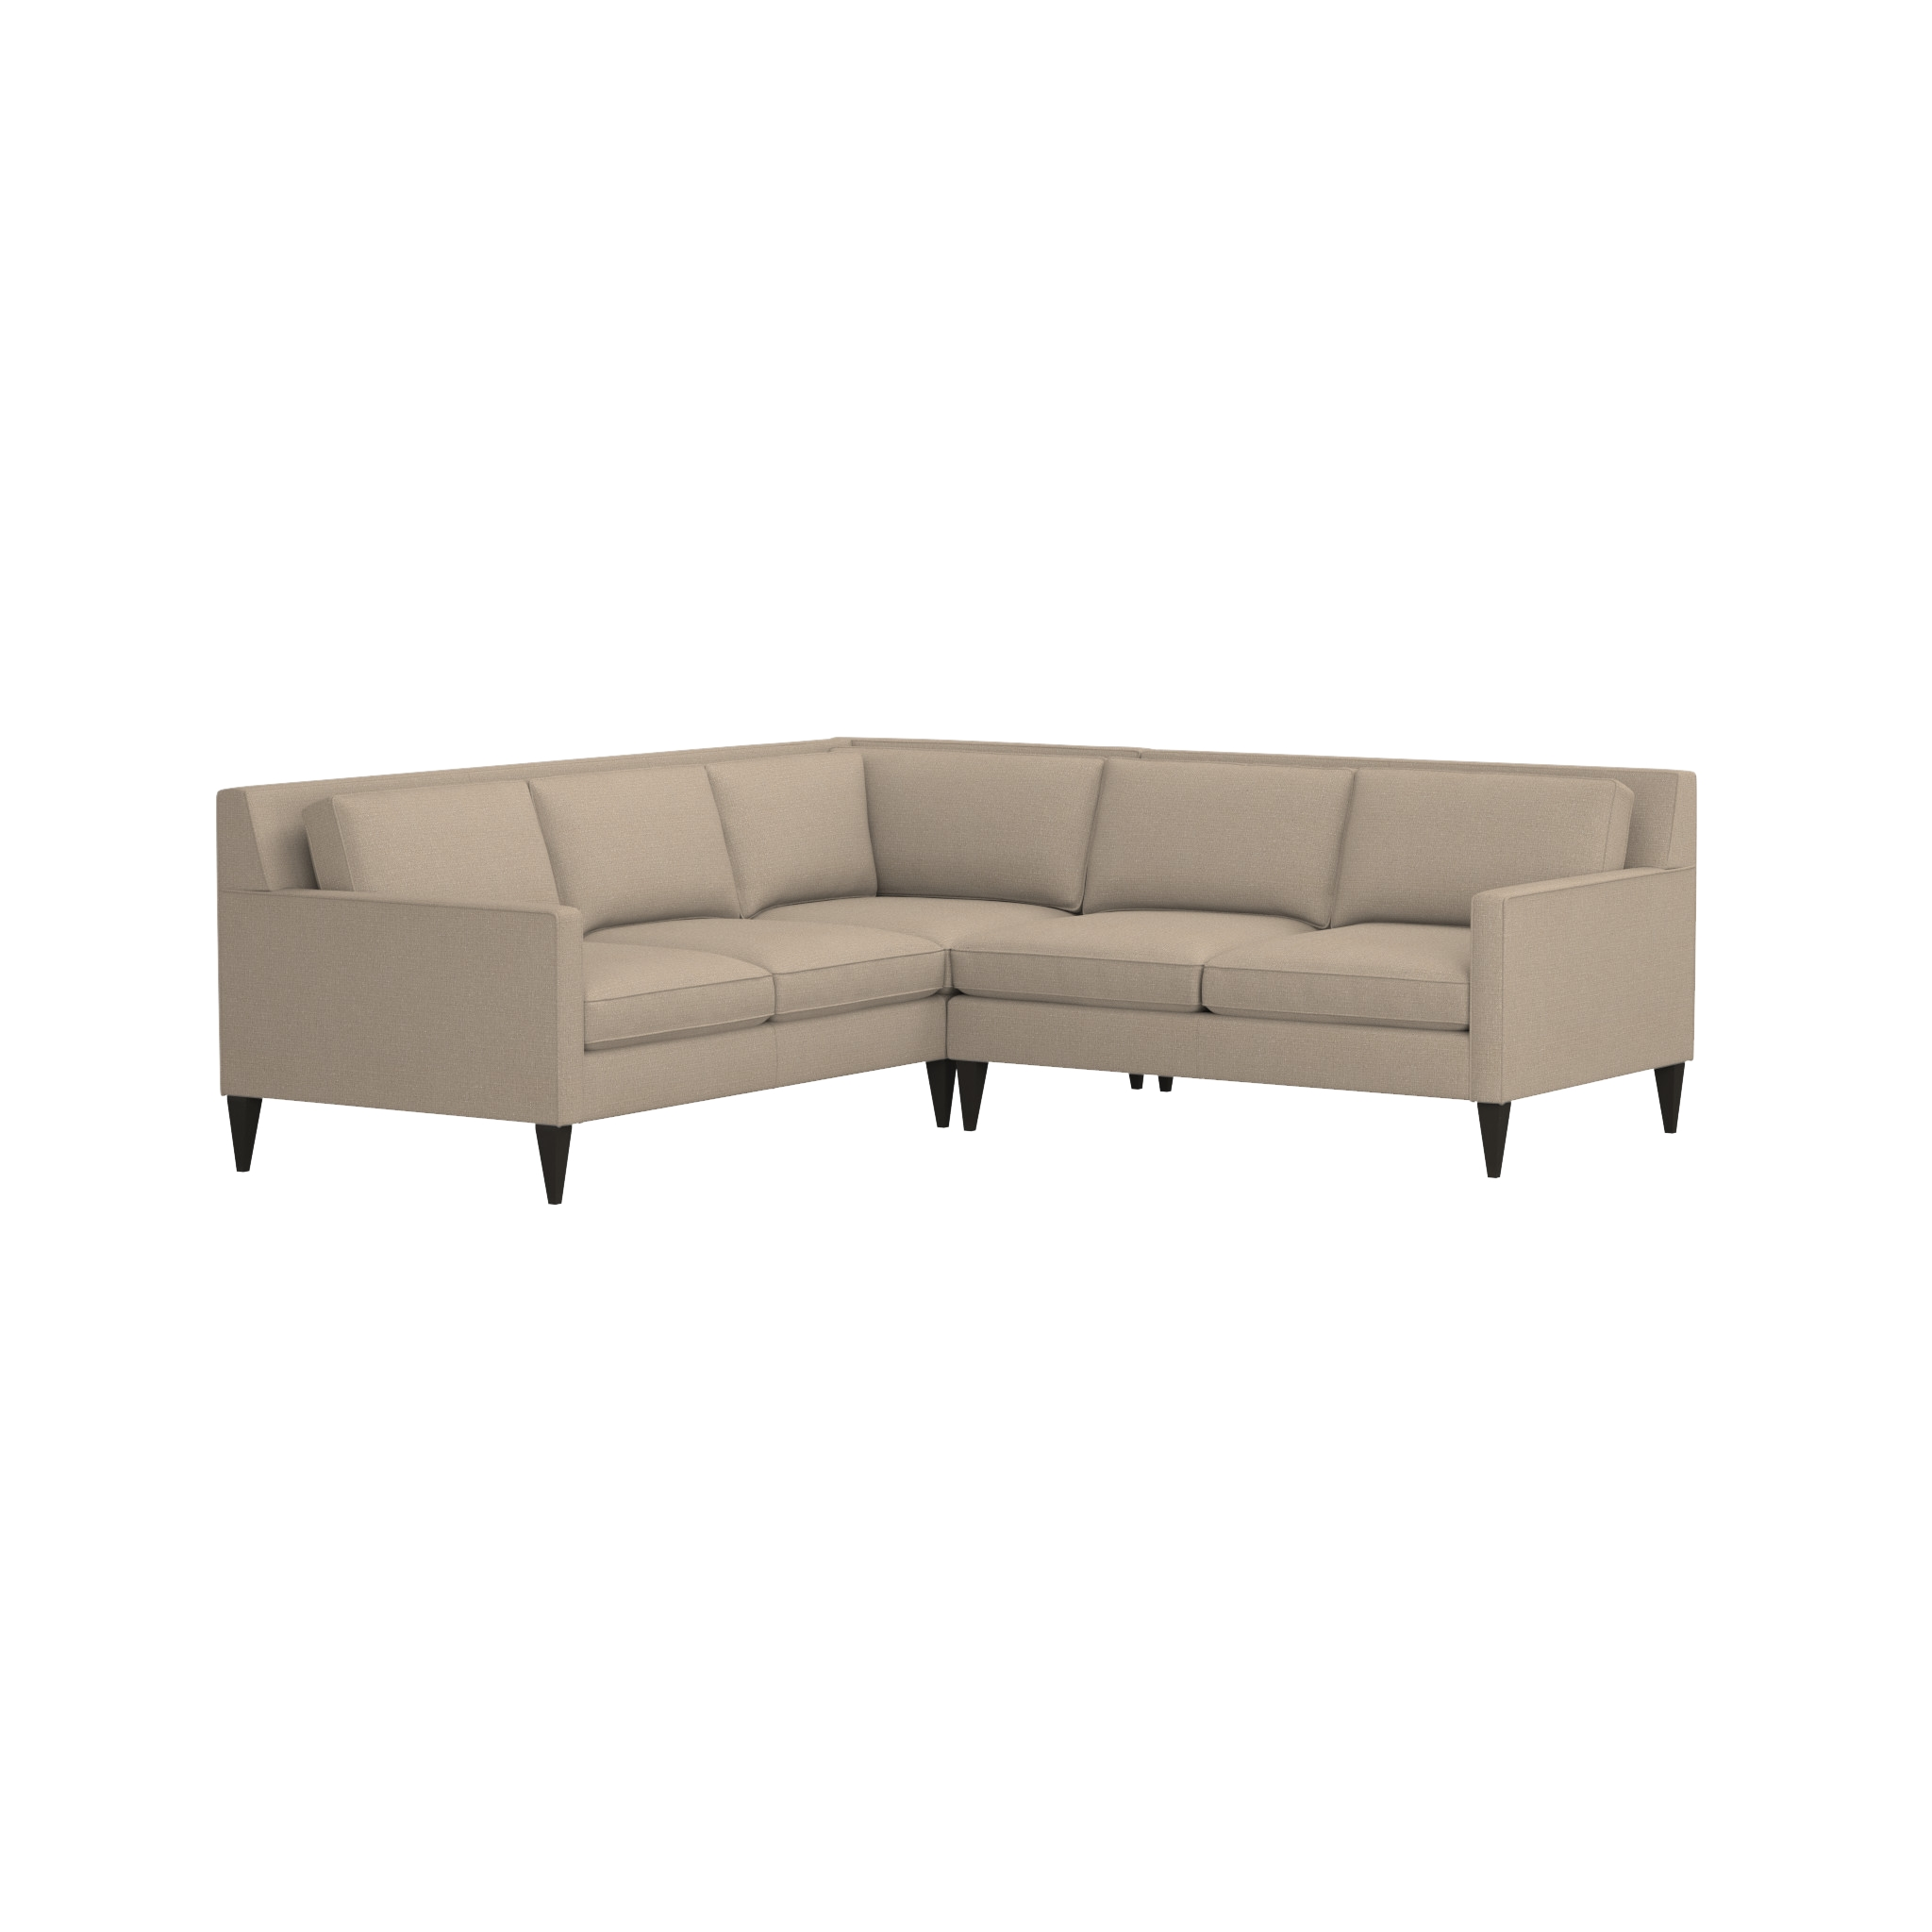 Rochelle 2-Piece Sectional Sofa | Crate And Barrel for Sectional Crate And Barrel